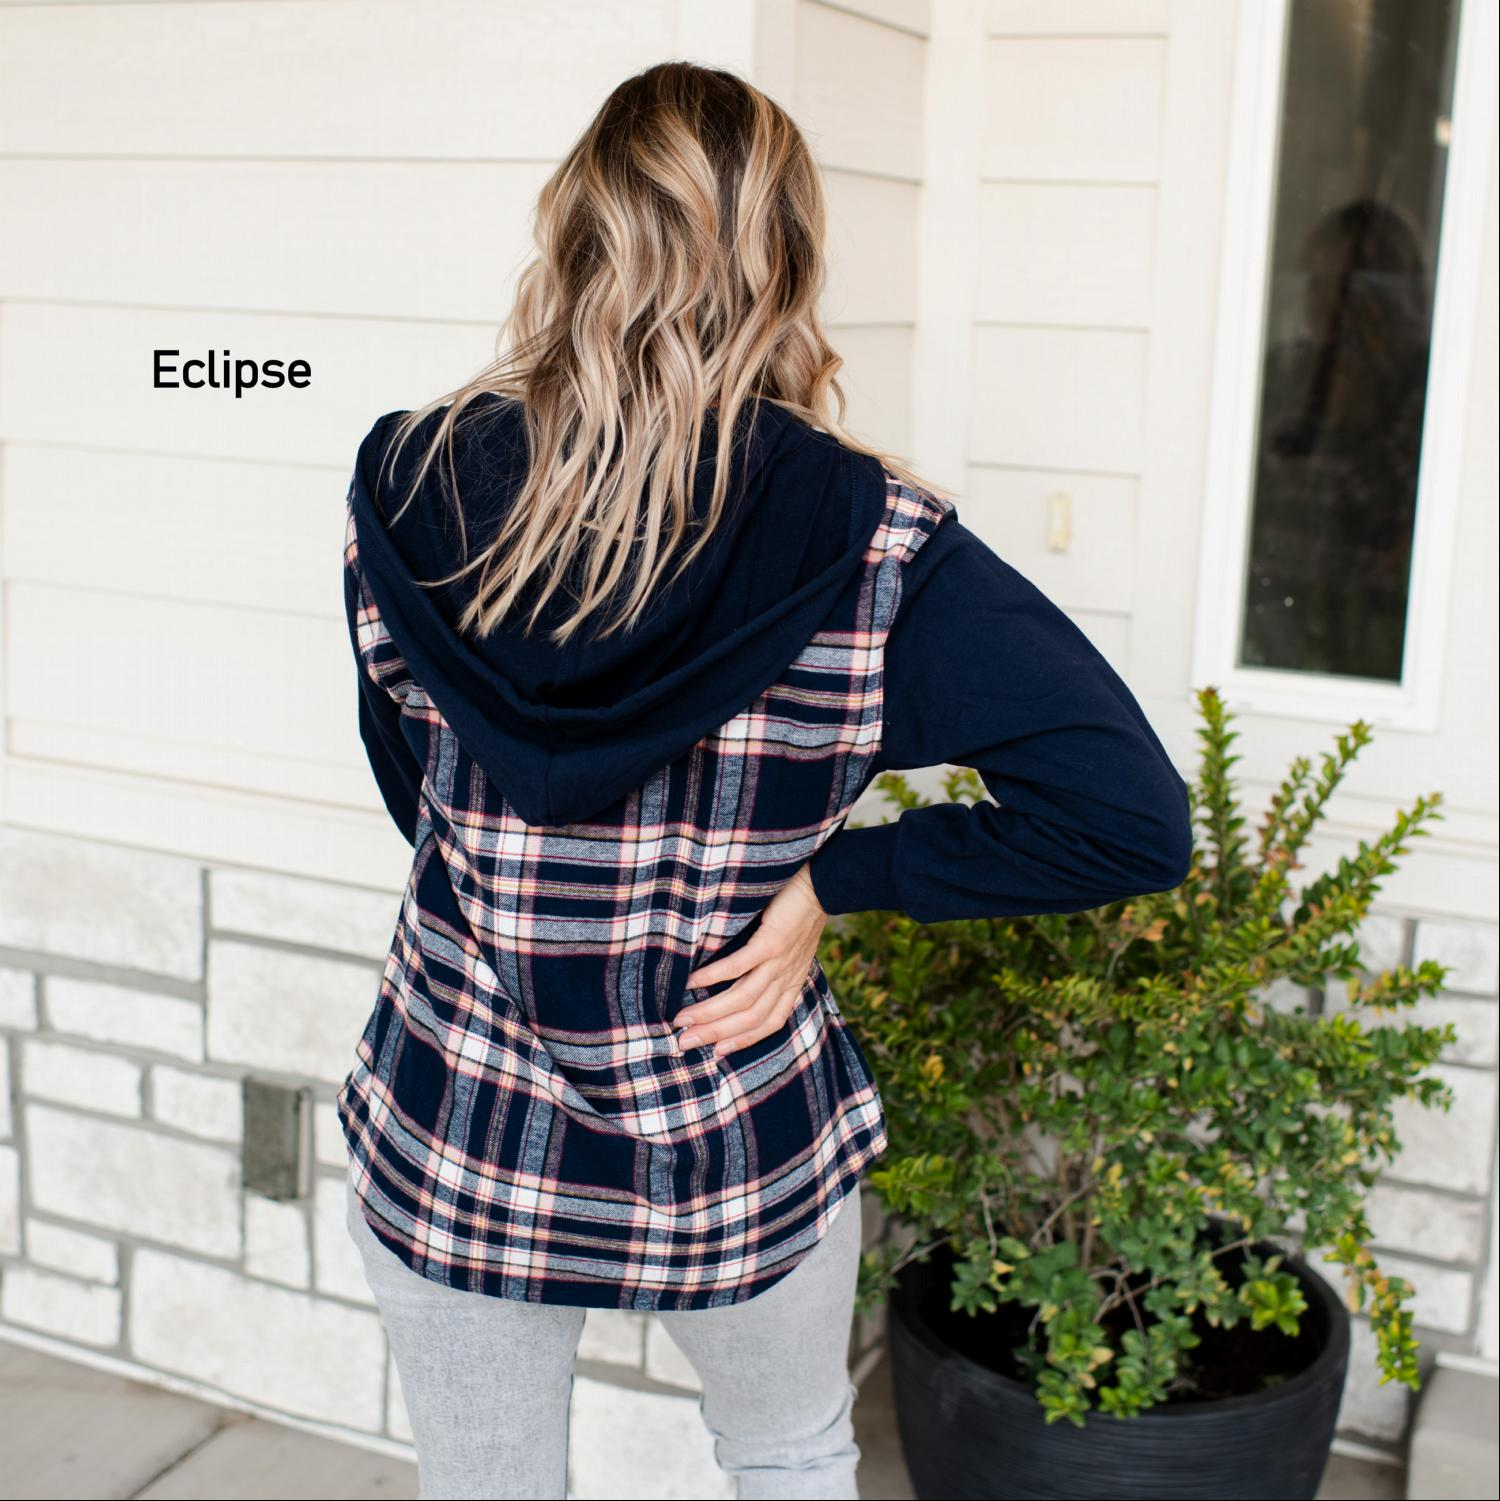 Eclipse Women's Sweatshirt Hoodie Pumpkin Drawstring Curved Hem Long Sleeves Fall USA